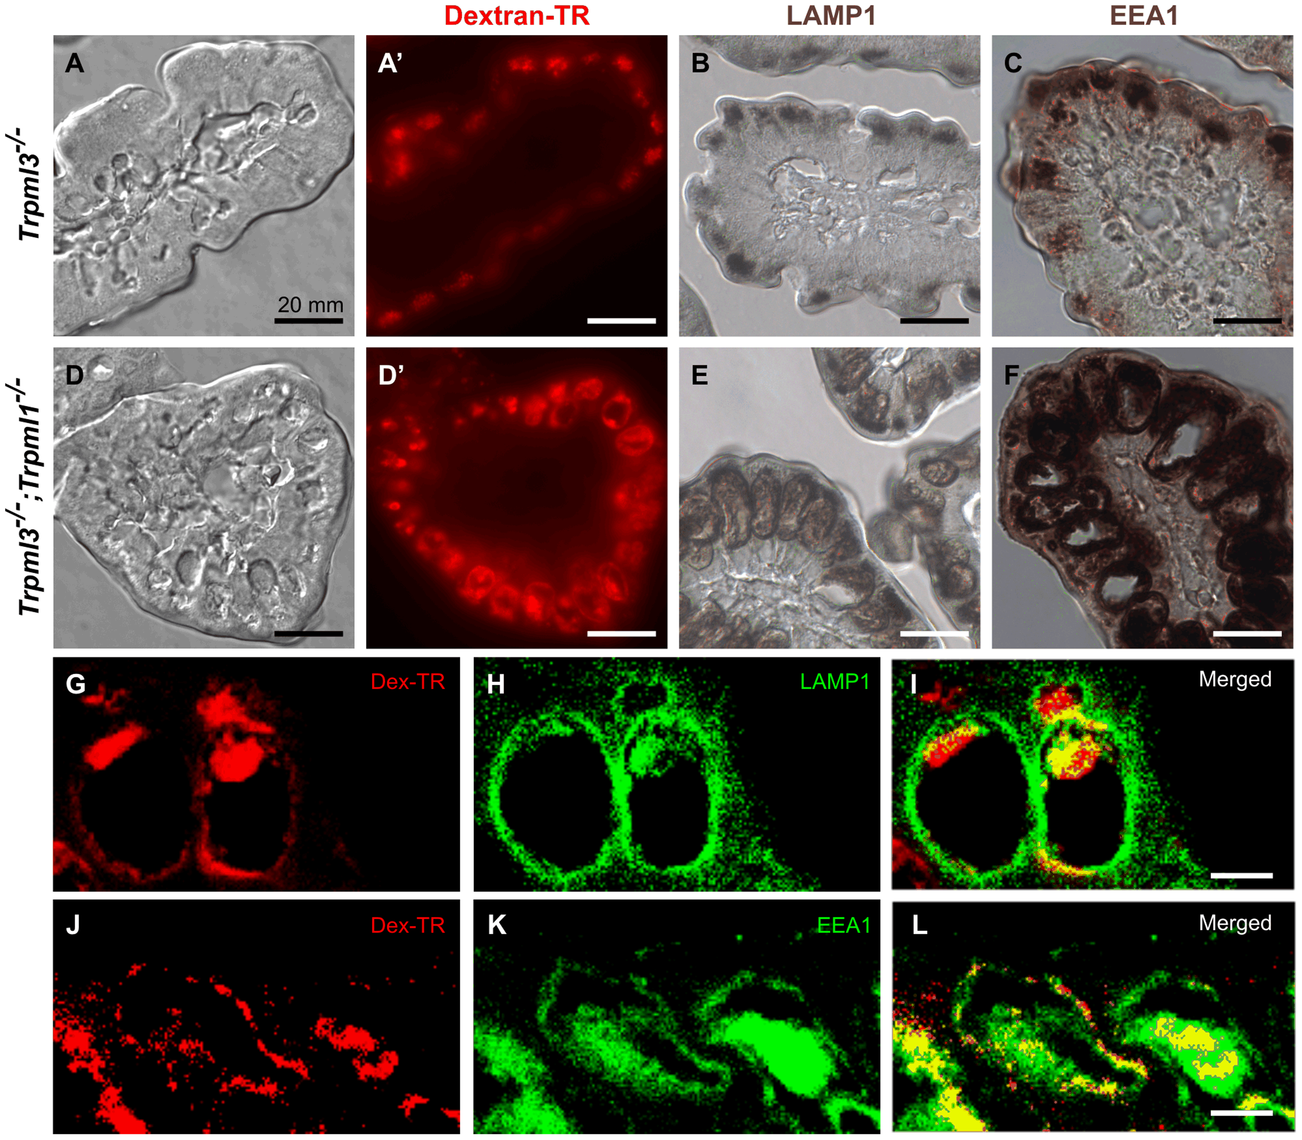 The pathological vacuoles of suckling enterocytes lacking mucolipins 1 and 3 are aberrant hybrid organelles with endosomal and lysosomal components.